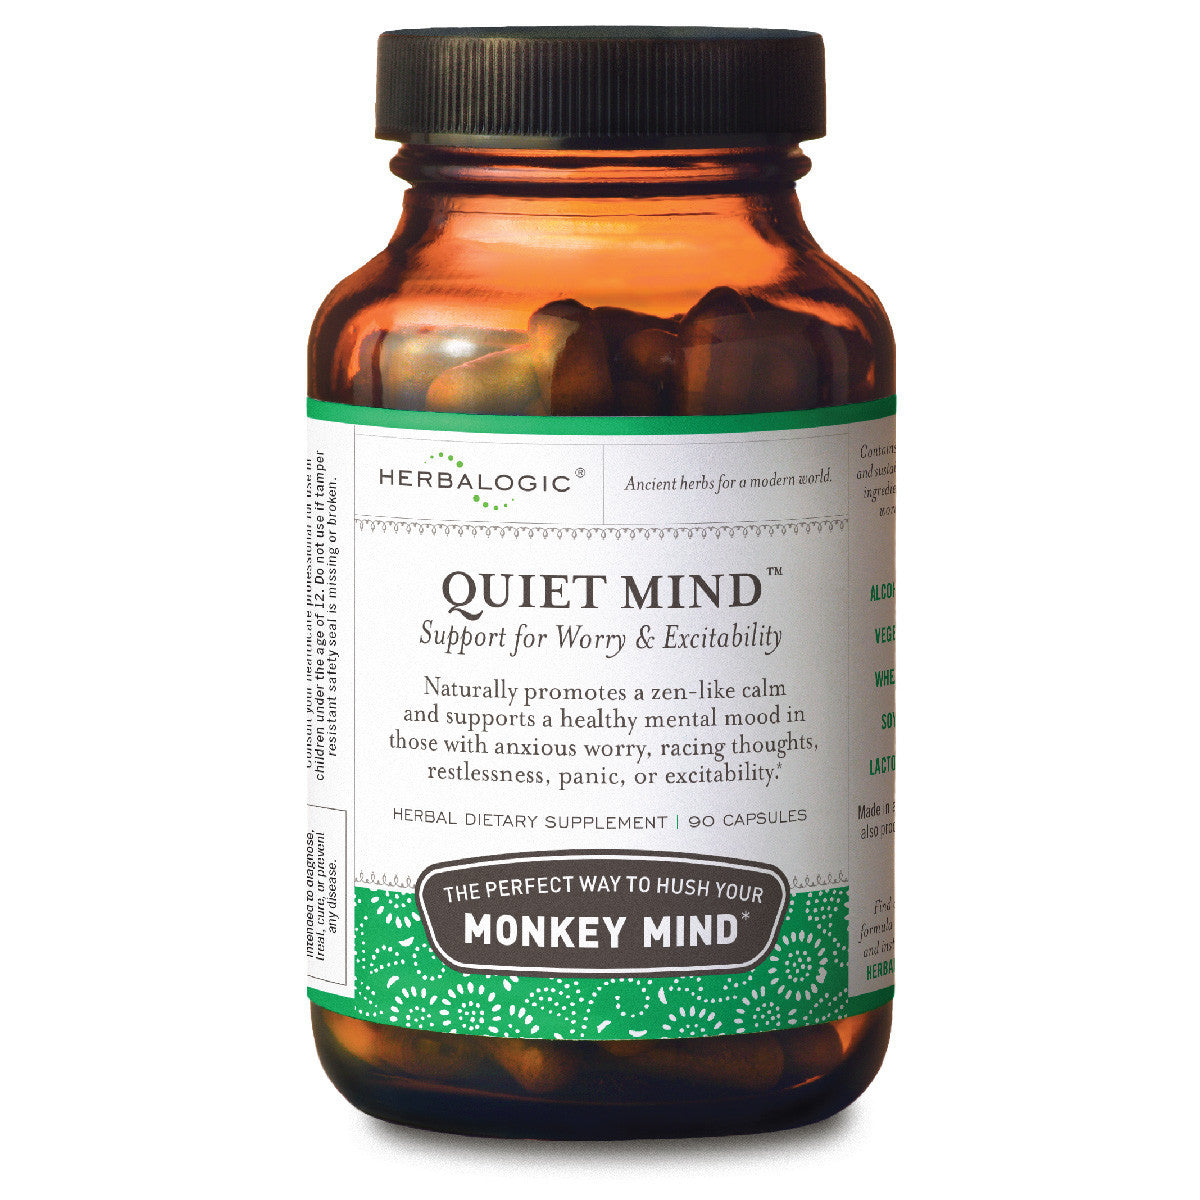 Calm Racing Thoughts And Nerves Herbalogic Quiet Mind Capsules